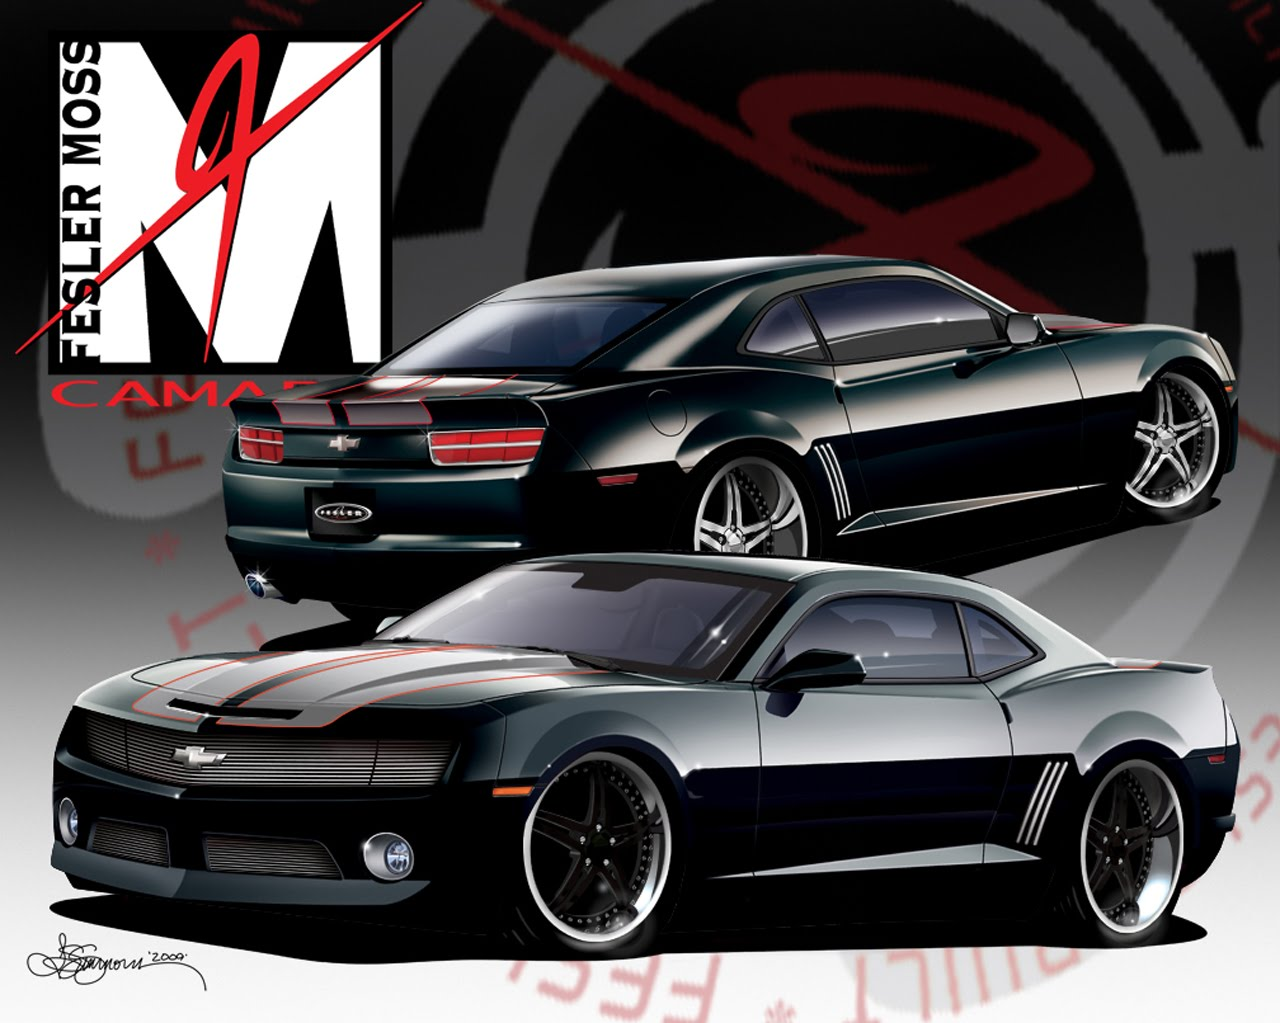 2010 Fesler-Moss Camaros Limited Edition|Price|Wallpaper|Specs title=